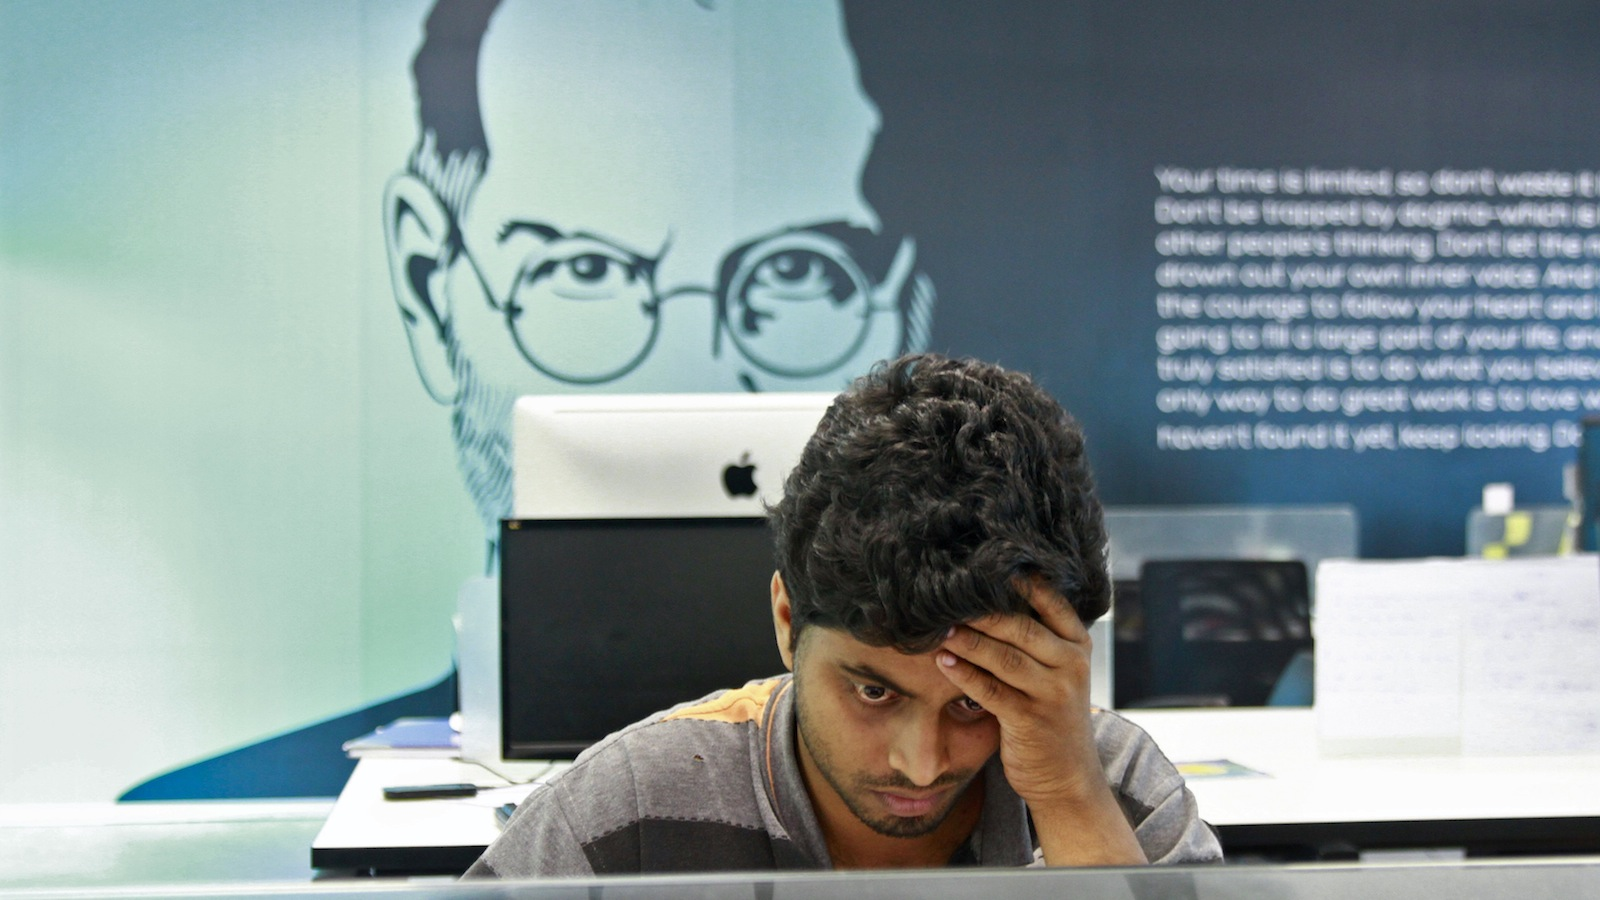 An employee works on a computer terminal against the backdrop of a picture of late Apple co-founder Steve Jobs at the Start-up Village in Kinfra High Tech Park in the southern Indian city of Kochi October 13, 2012. Three decades after Infosys, India's second-largest software service provider, was founded by middle-class engineers, the country has failed to create an enabling environment for first-generation entrepreneurs. Startup Village wants to break the logjam by helping engineers develop 1,000 Internet and mobile companies in the next 10 years. It provides its members with office space, guidance and a chance to hobnob with the stars of the tech industry. But critics say this may not even be the beginning of a game-changer unless India deals with a host of other impediments - from red tape to a lack of innovation and a dearth of investors - that are blocking entrepreneurship in Asia's third-largest economy.